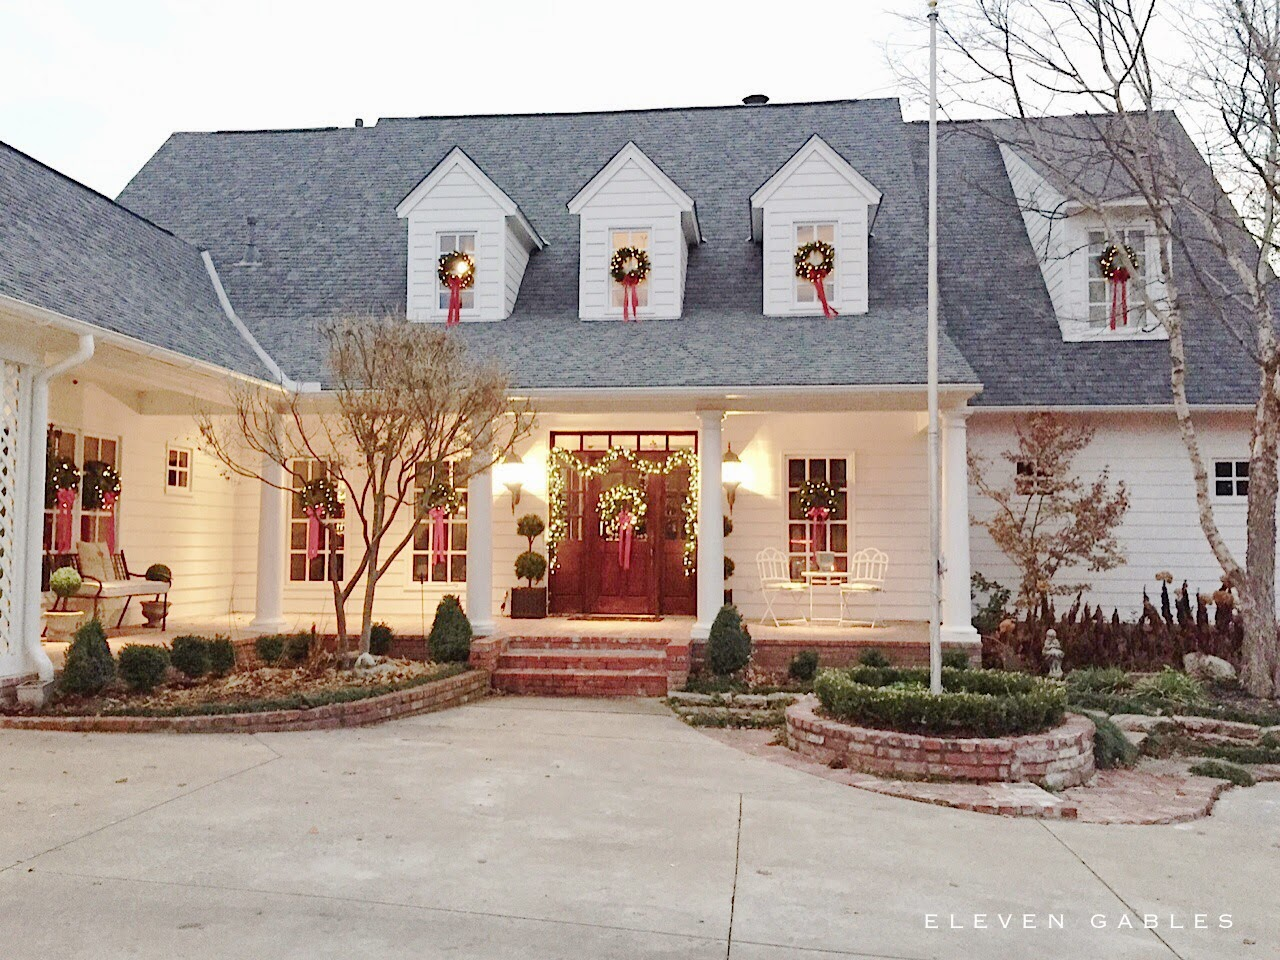 Eleven Gables: Merry Christmas, Darling! Holiday Home Tour 2014